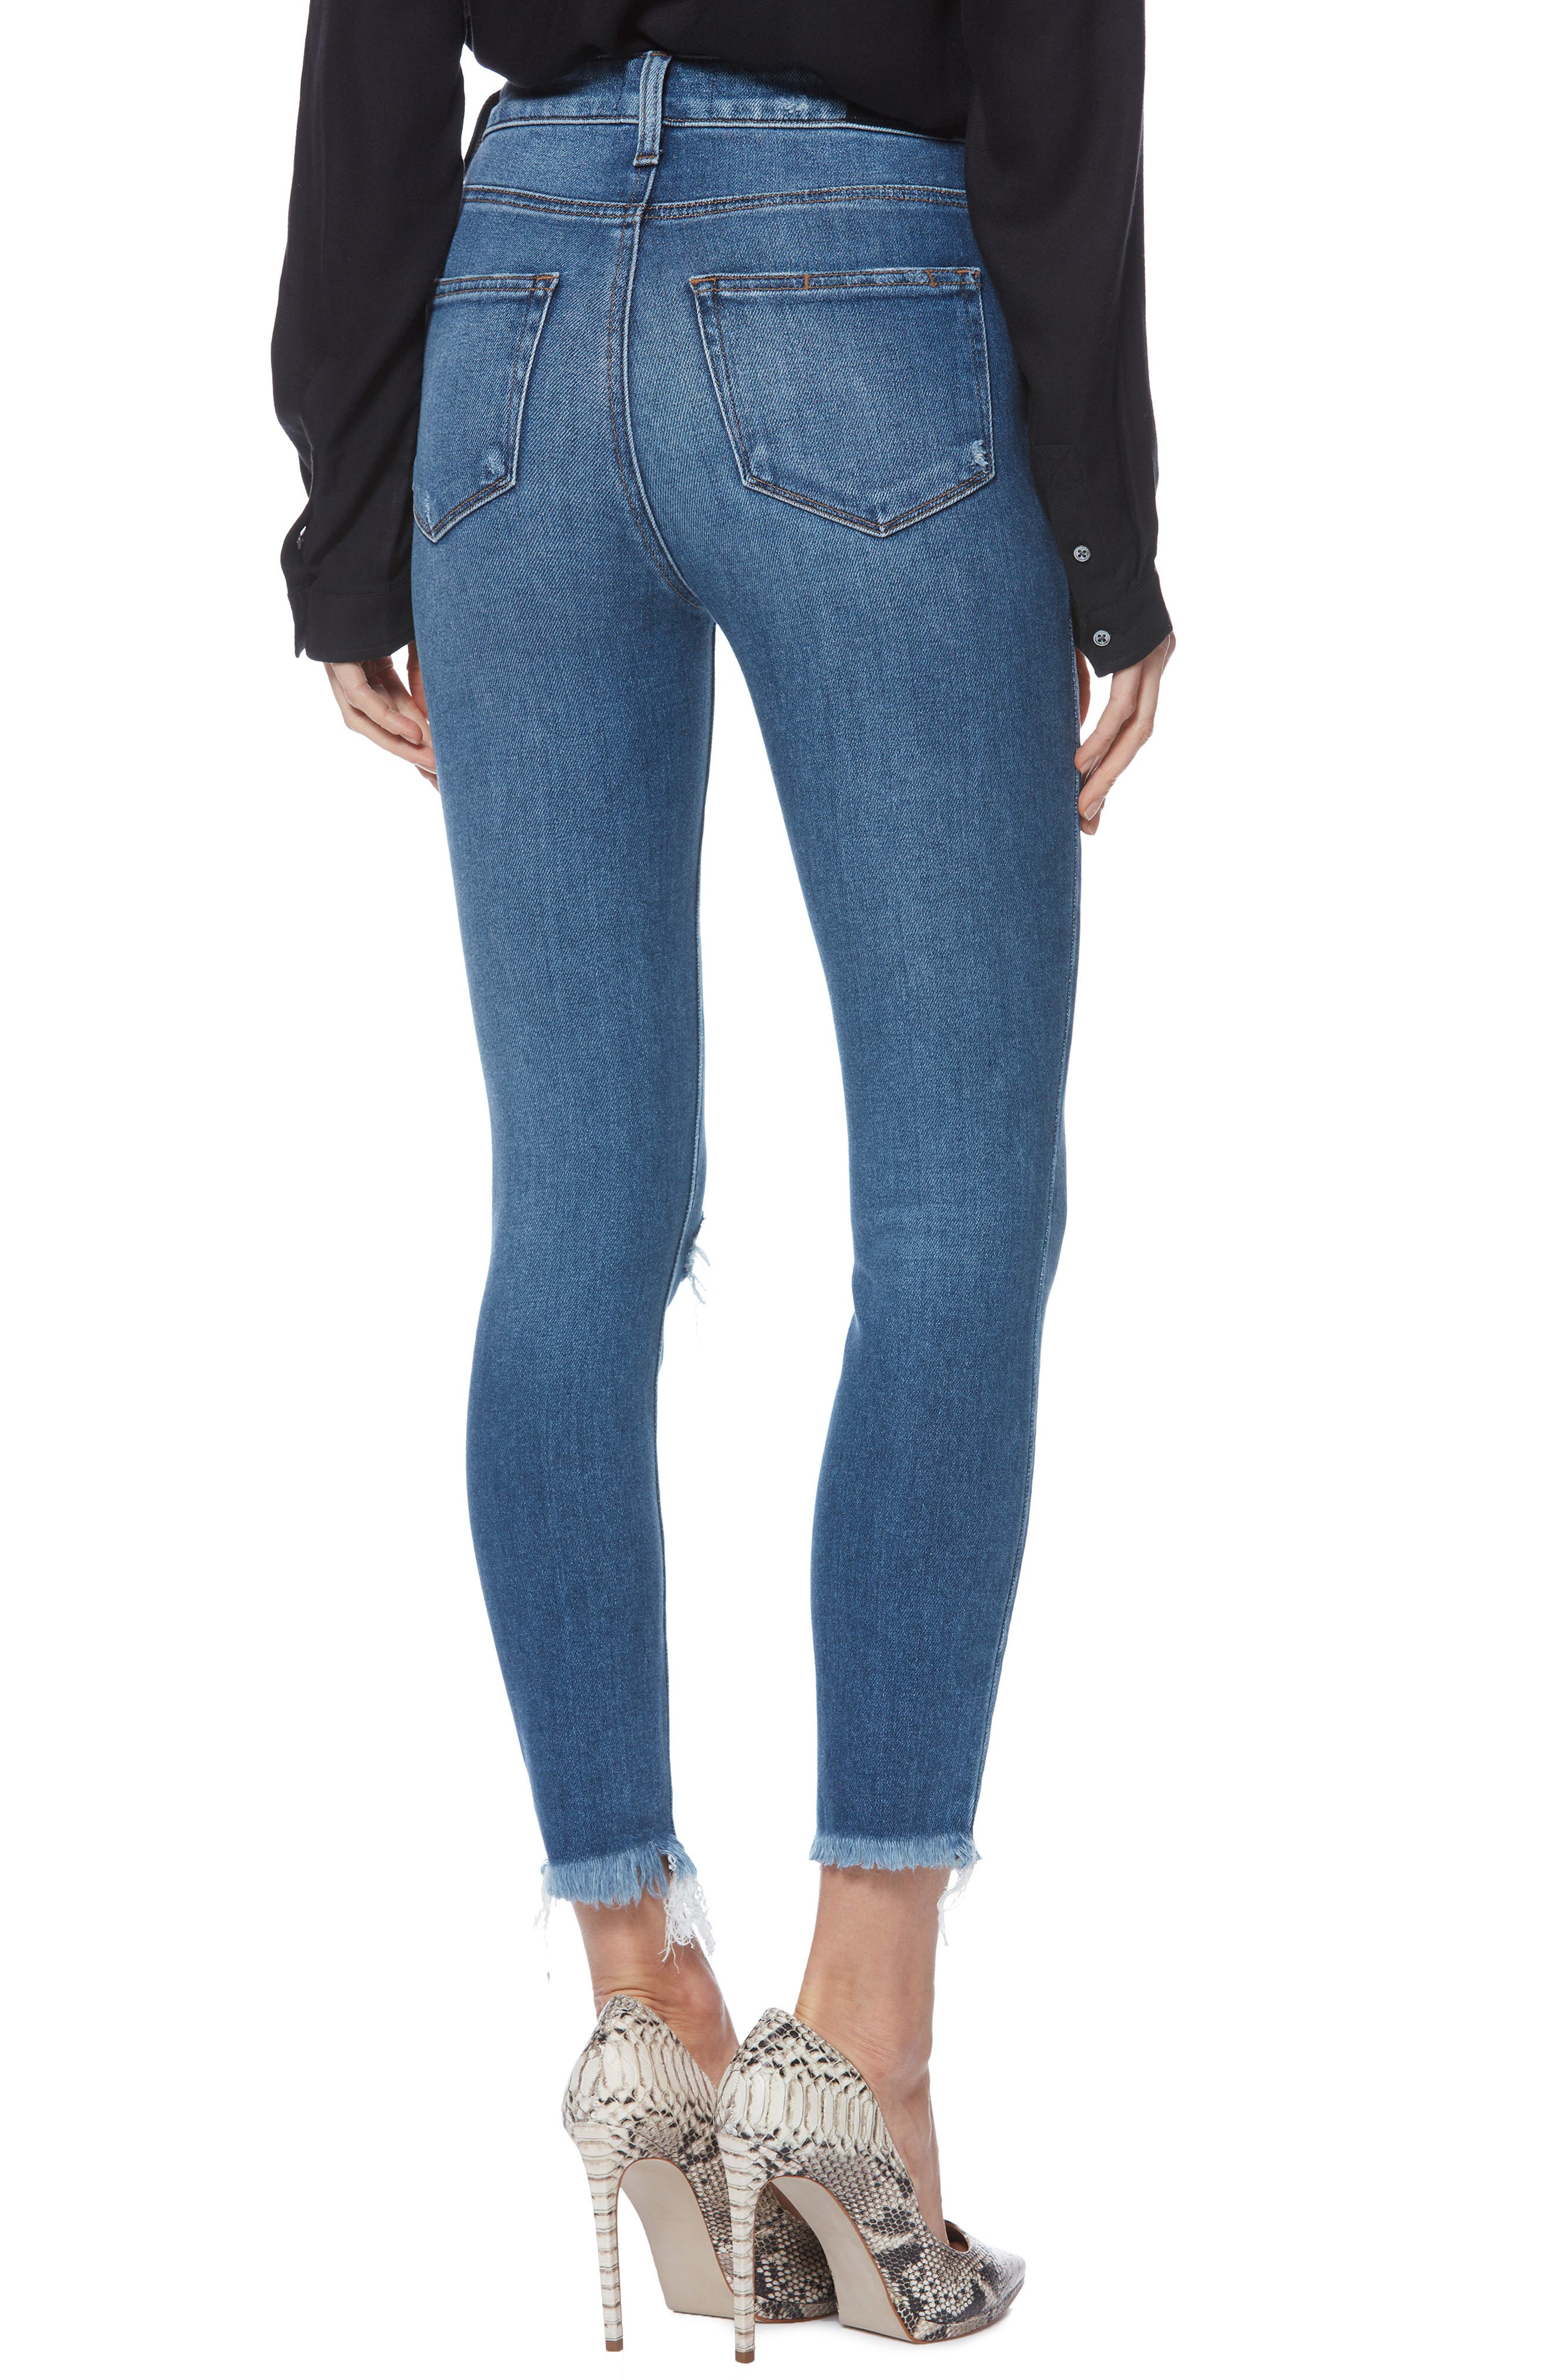 PAIGE,                             Margot High Waist Crop Skinny Jeans,                             Alternate thumbnail 2, color,                             ALESSIO DESTRUCTED